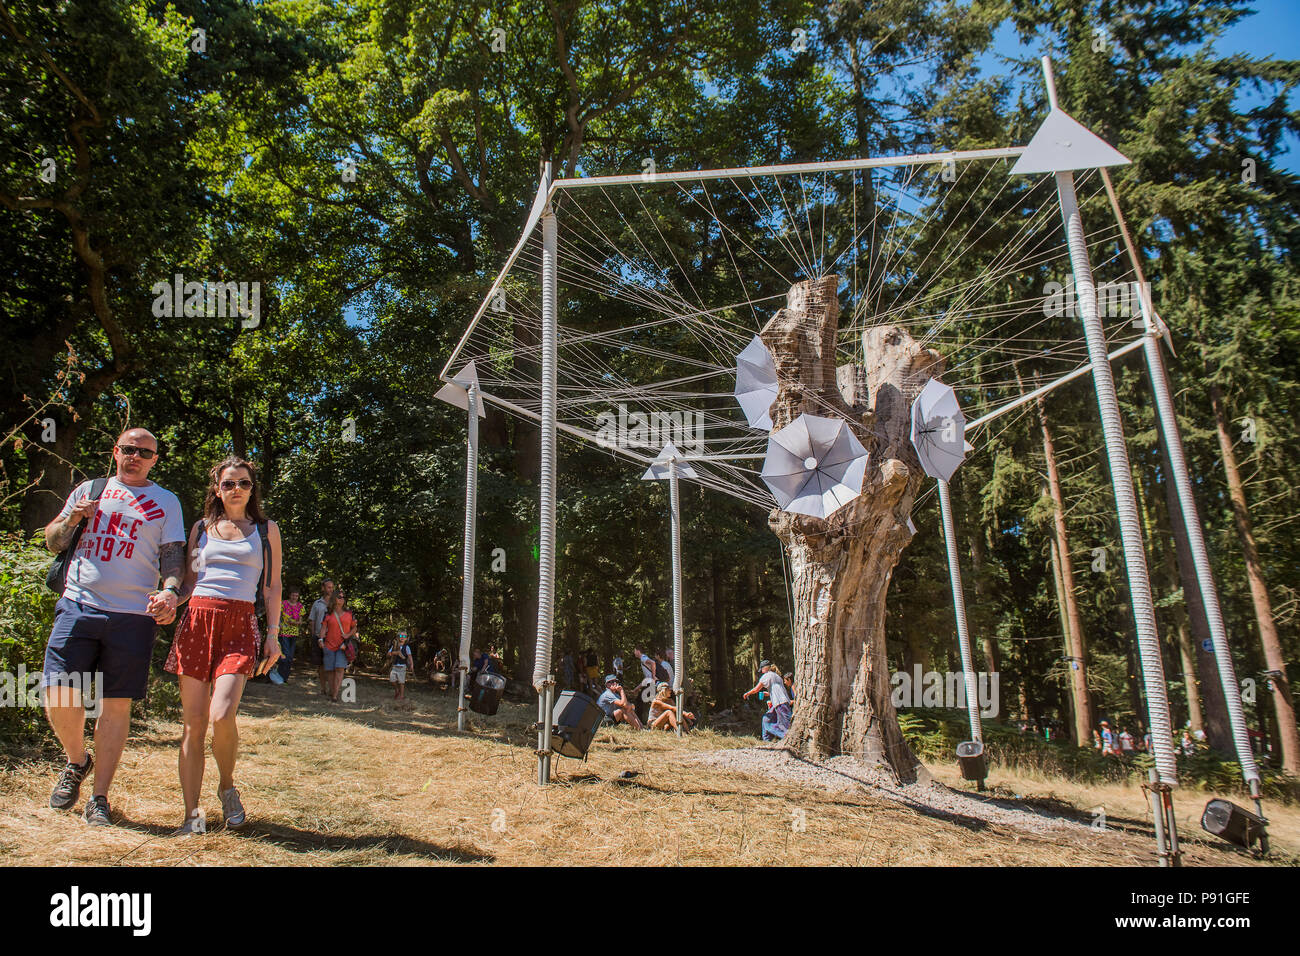 Suffolk, UK, 14 July 2018. An umbrella sculpture in the Faraway Forest - The 2018 Latitude Festival, Henham Park. Suffolk 14 July 2018 Credit: Guy Bell/Alamy Live News - Stock Image